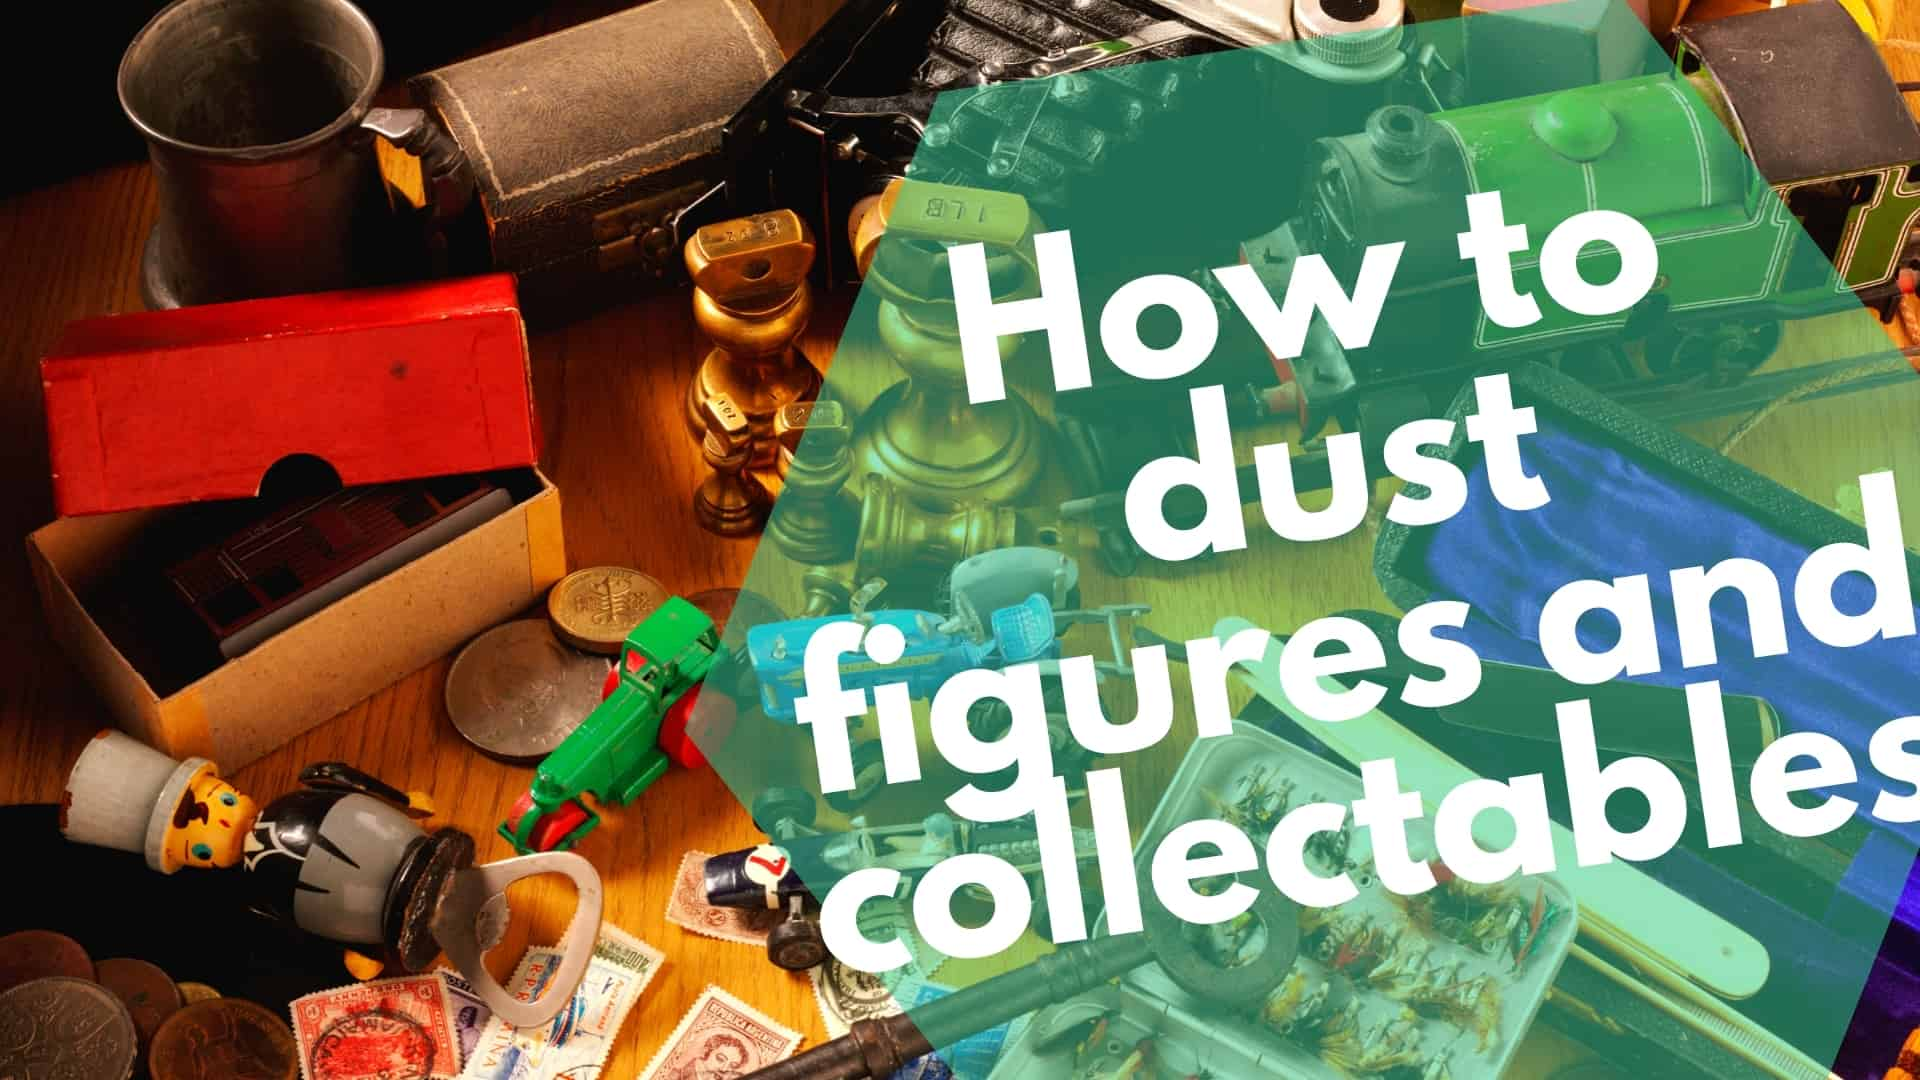 How to dust figures and collectables